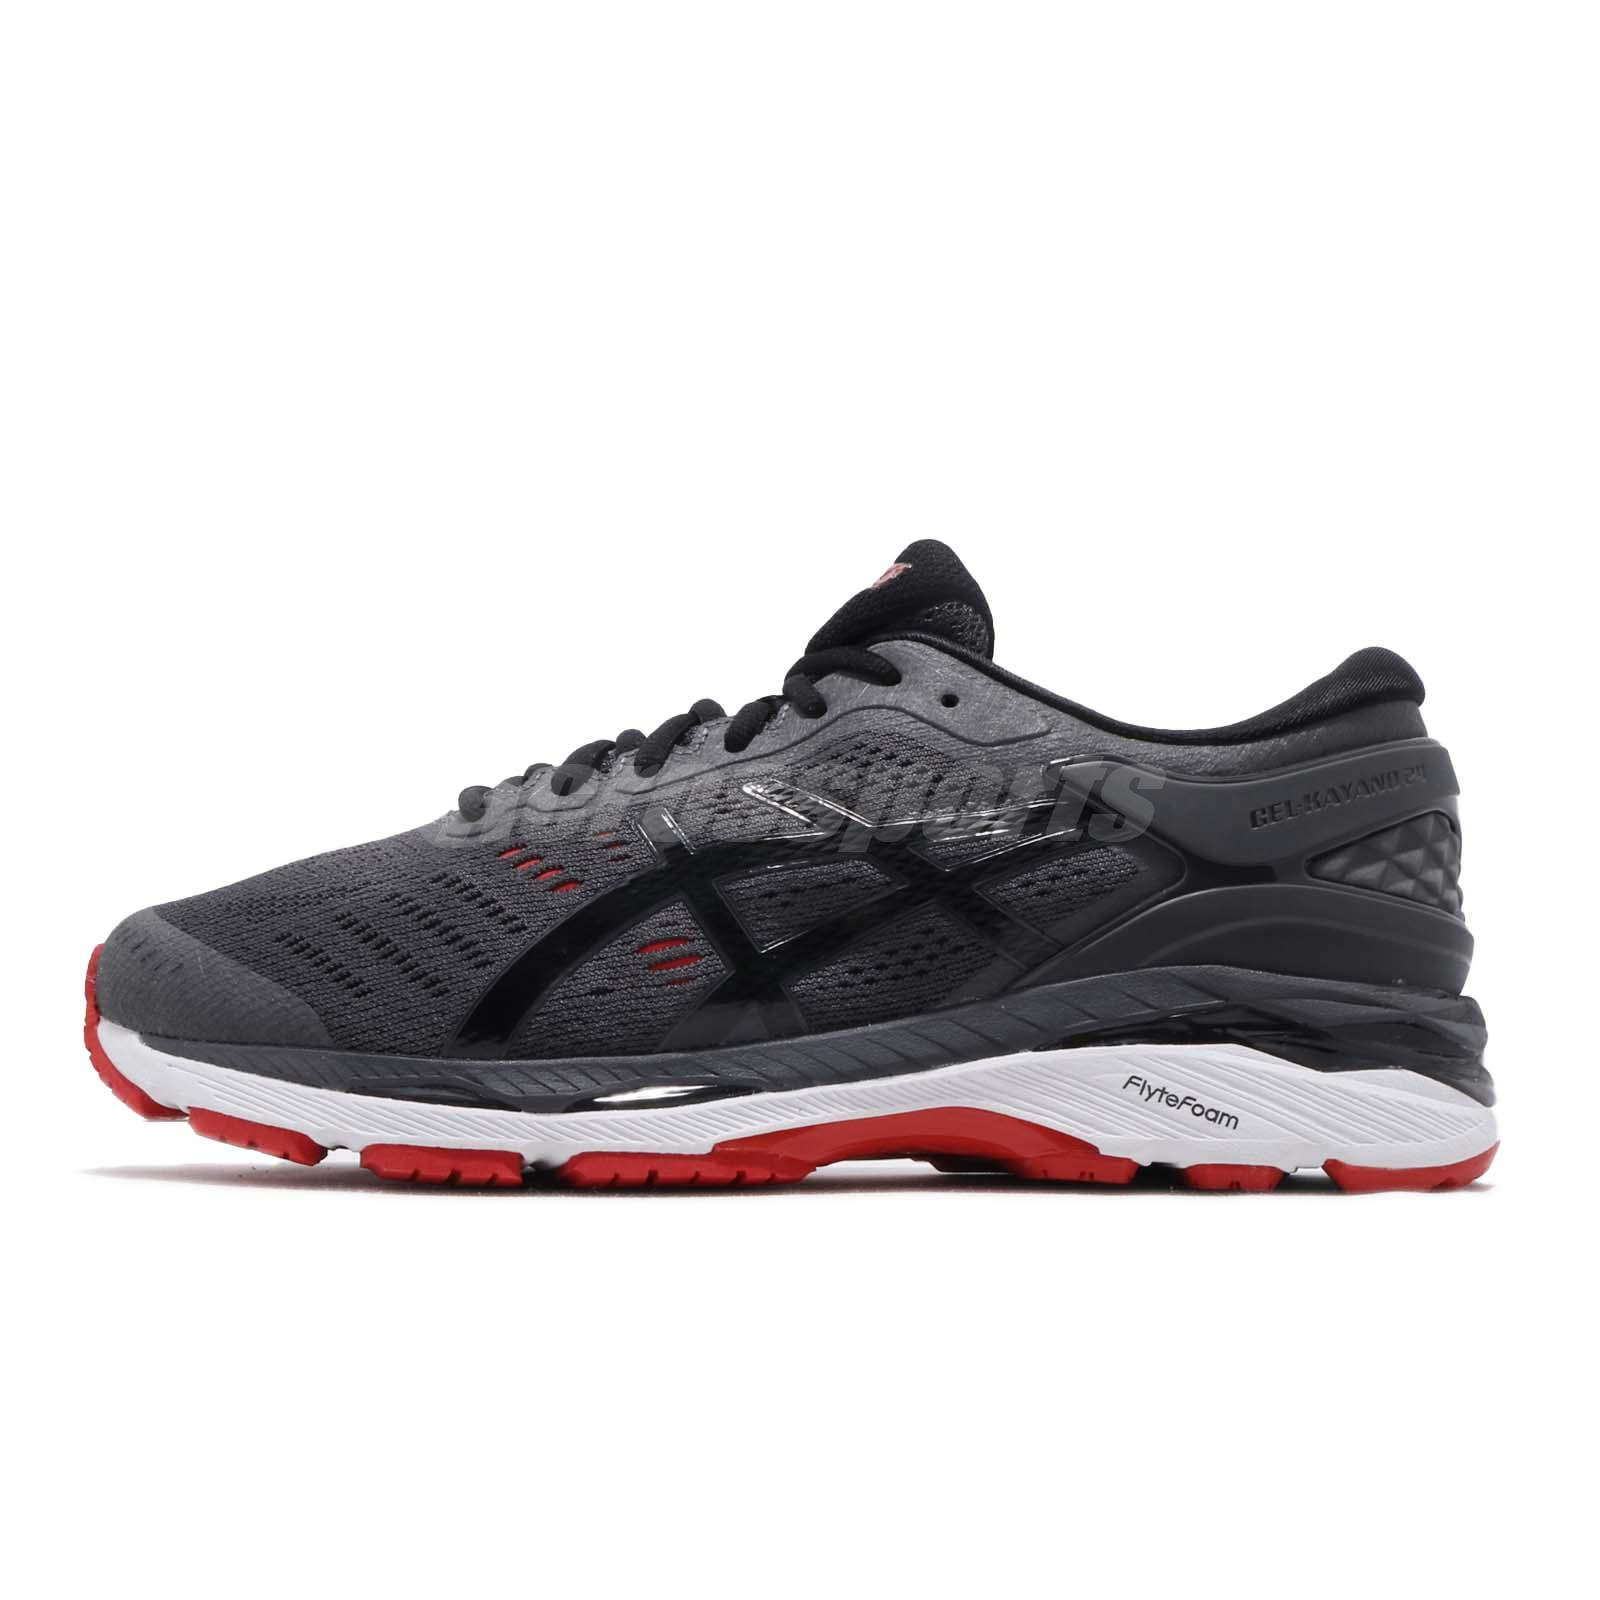 Asics Gel-Kayano 24 2E Wide FlyteFoam Grey Red Mens Running Shoes T7A0N-9590 f18b177f32fda